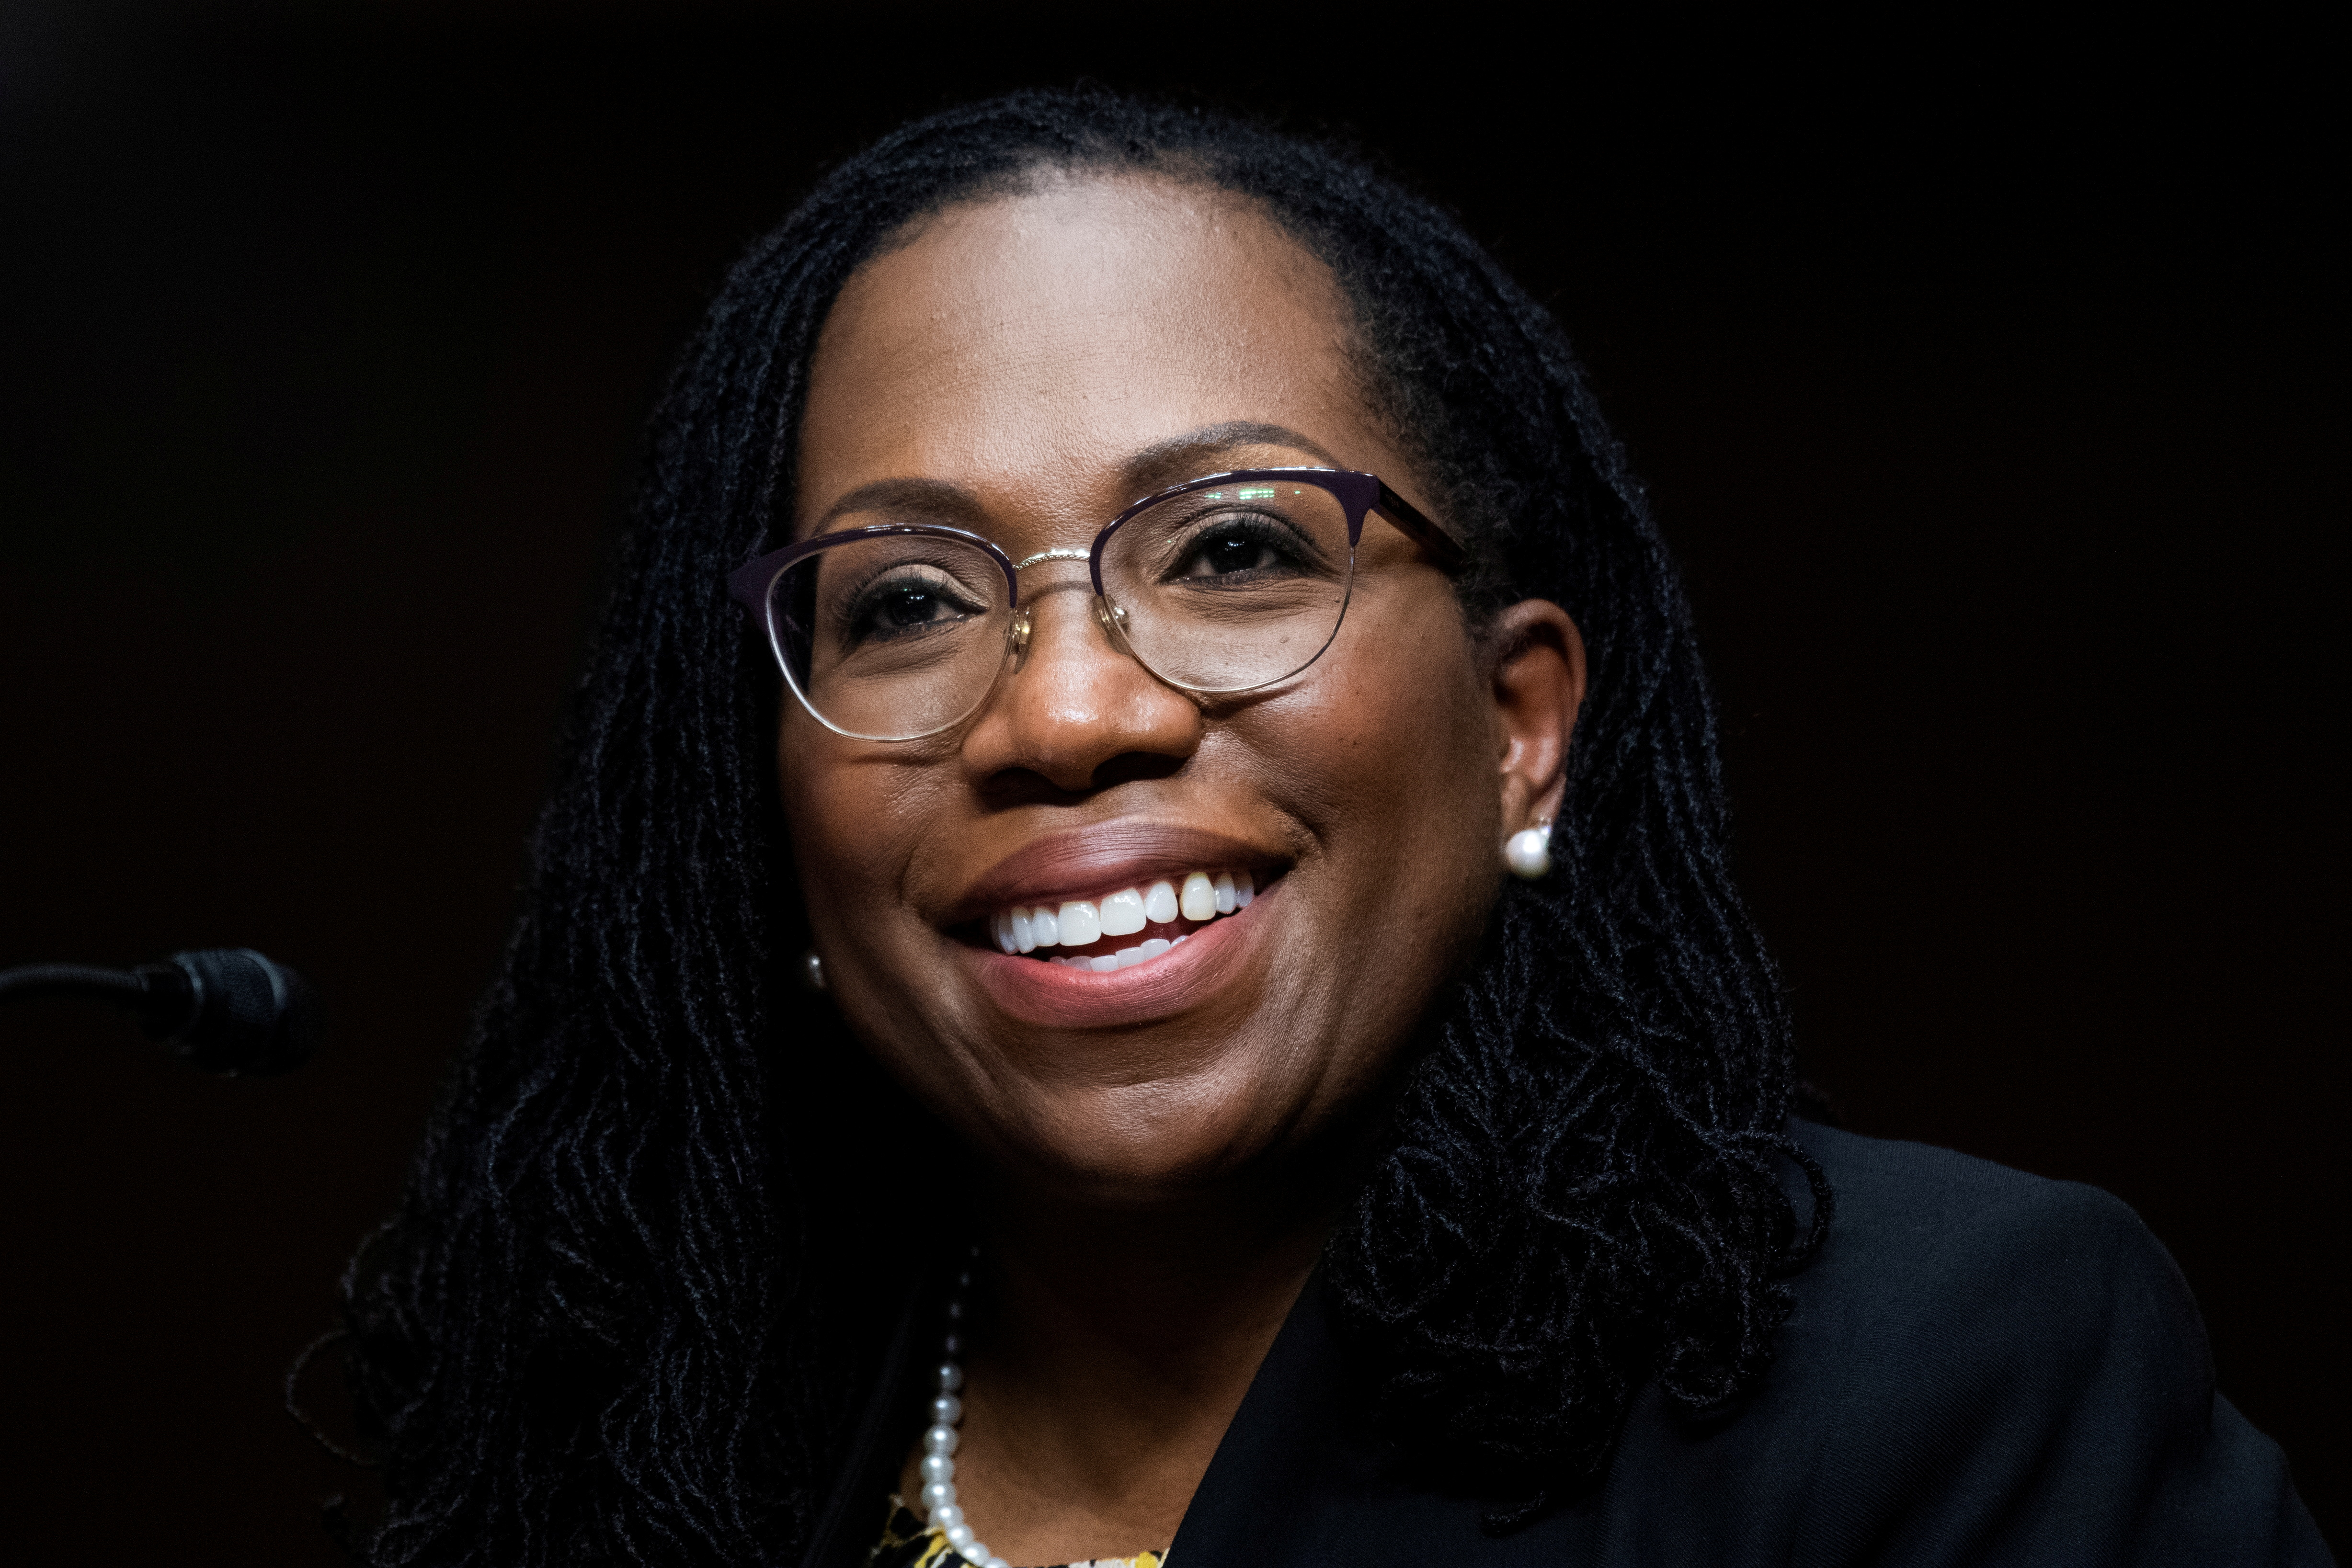 Ketanji Brown Jackson, nominated to be a U.S. Circuit Judge for the District of Columbia Circuit, testifies before a Senate Judiciary Committee hearing on pending judicial nominations on Capitol Hill in Washington, U.S., April 28, 2021. Tom Williams/Pool via REUTERS